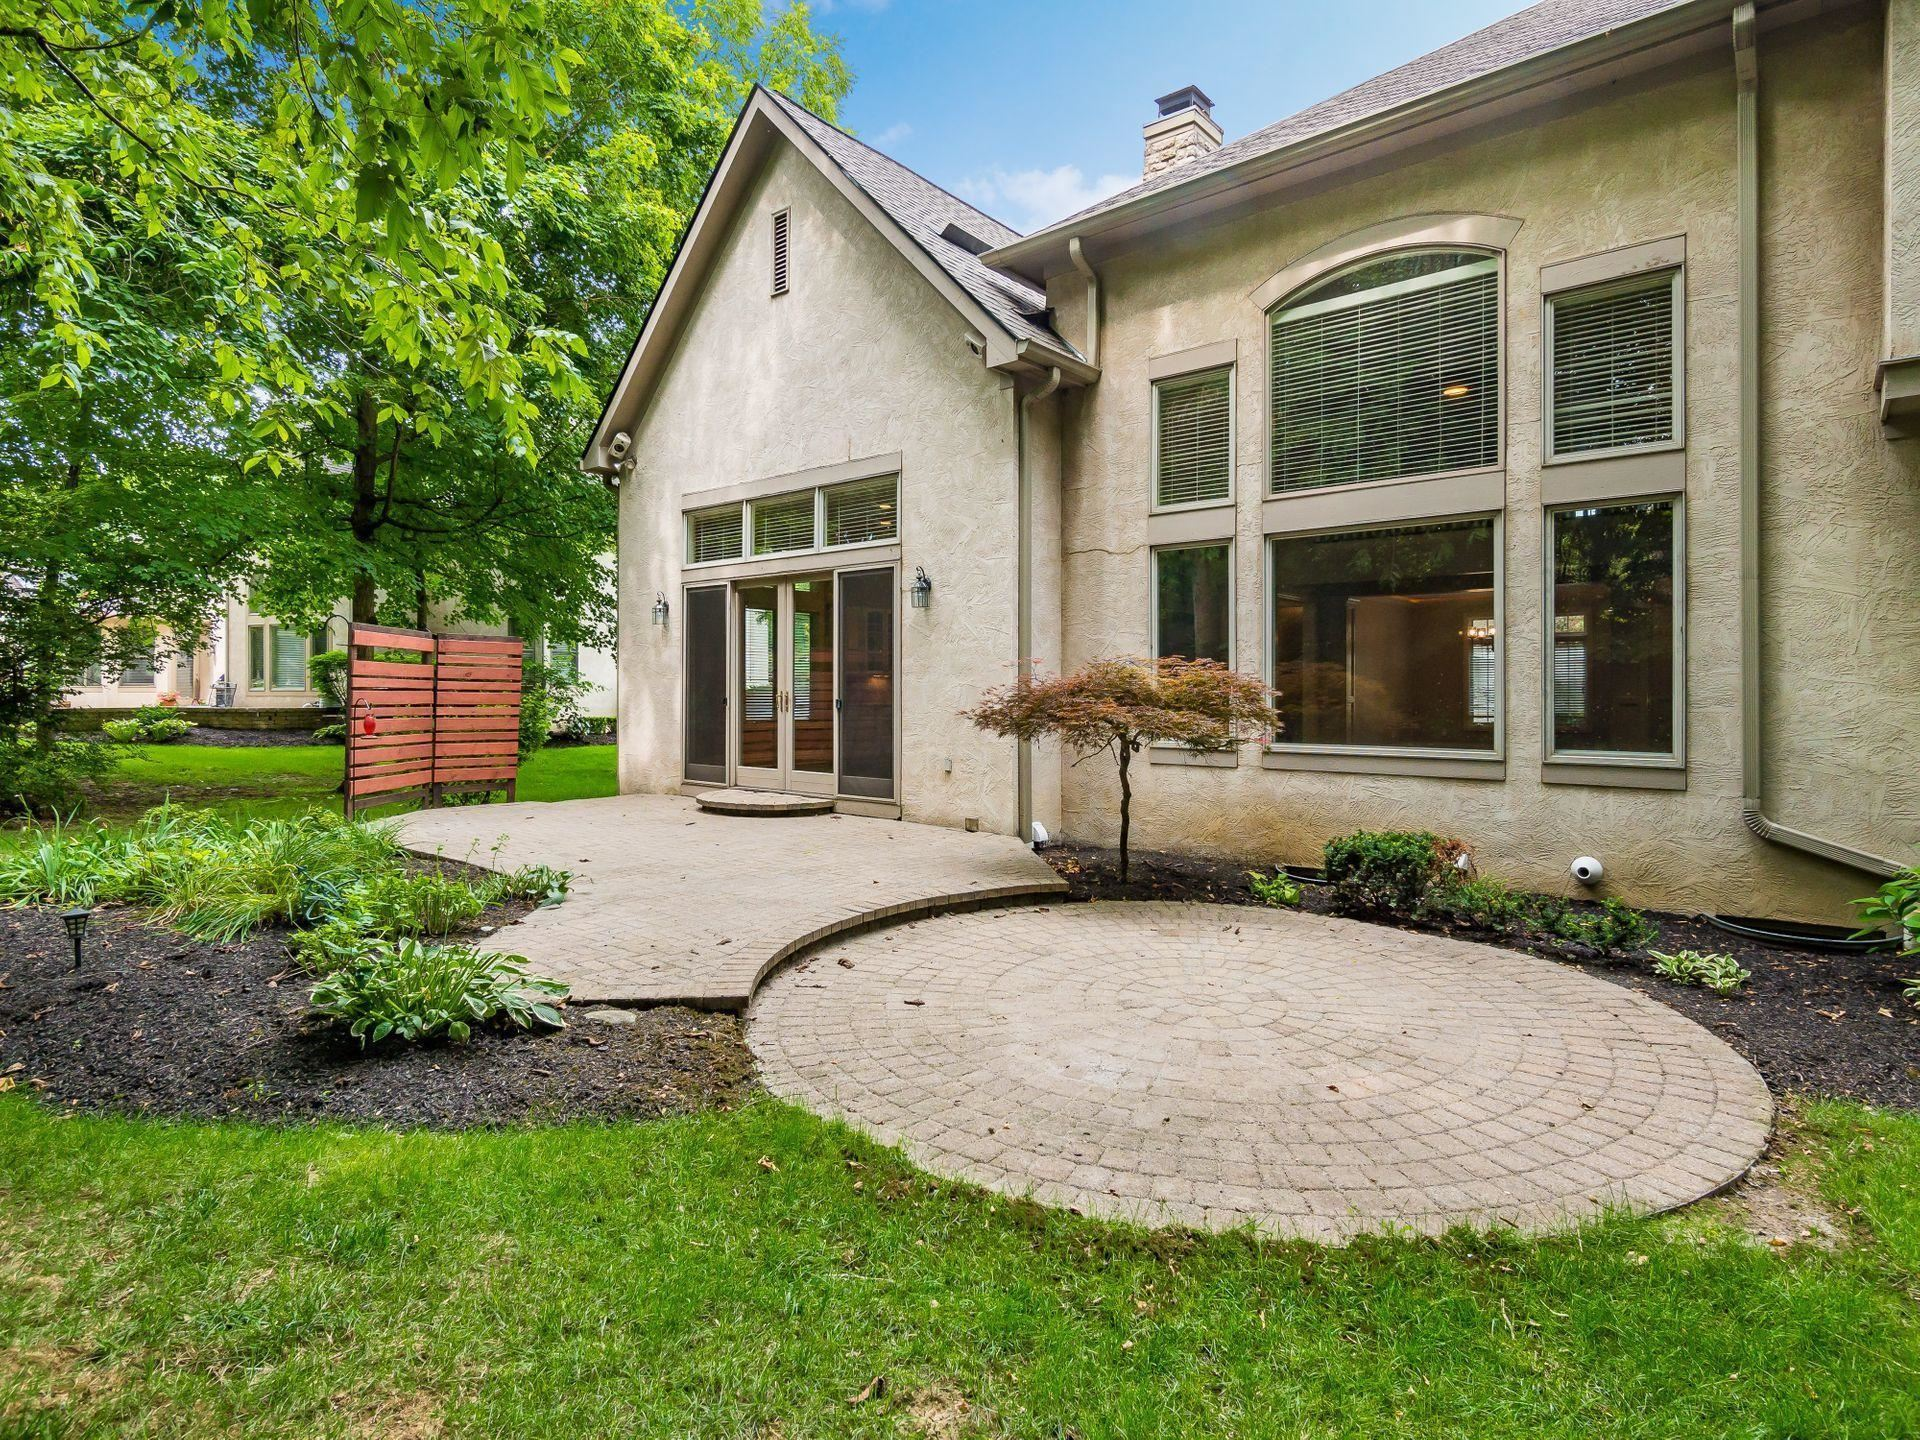 Photo of 5187 Canterbury Drive, Powell, OH 43065 (MLS # 221027900)